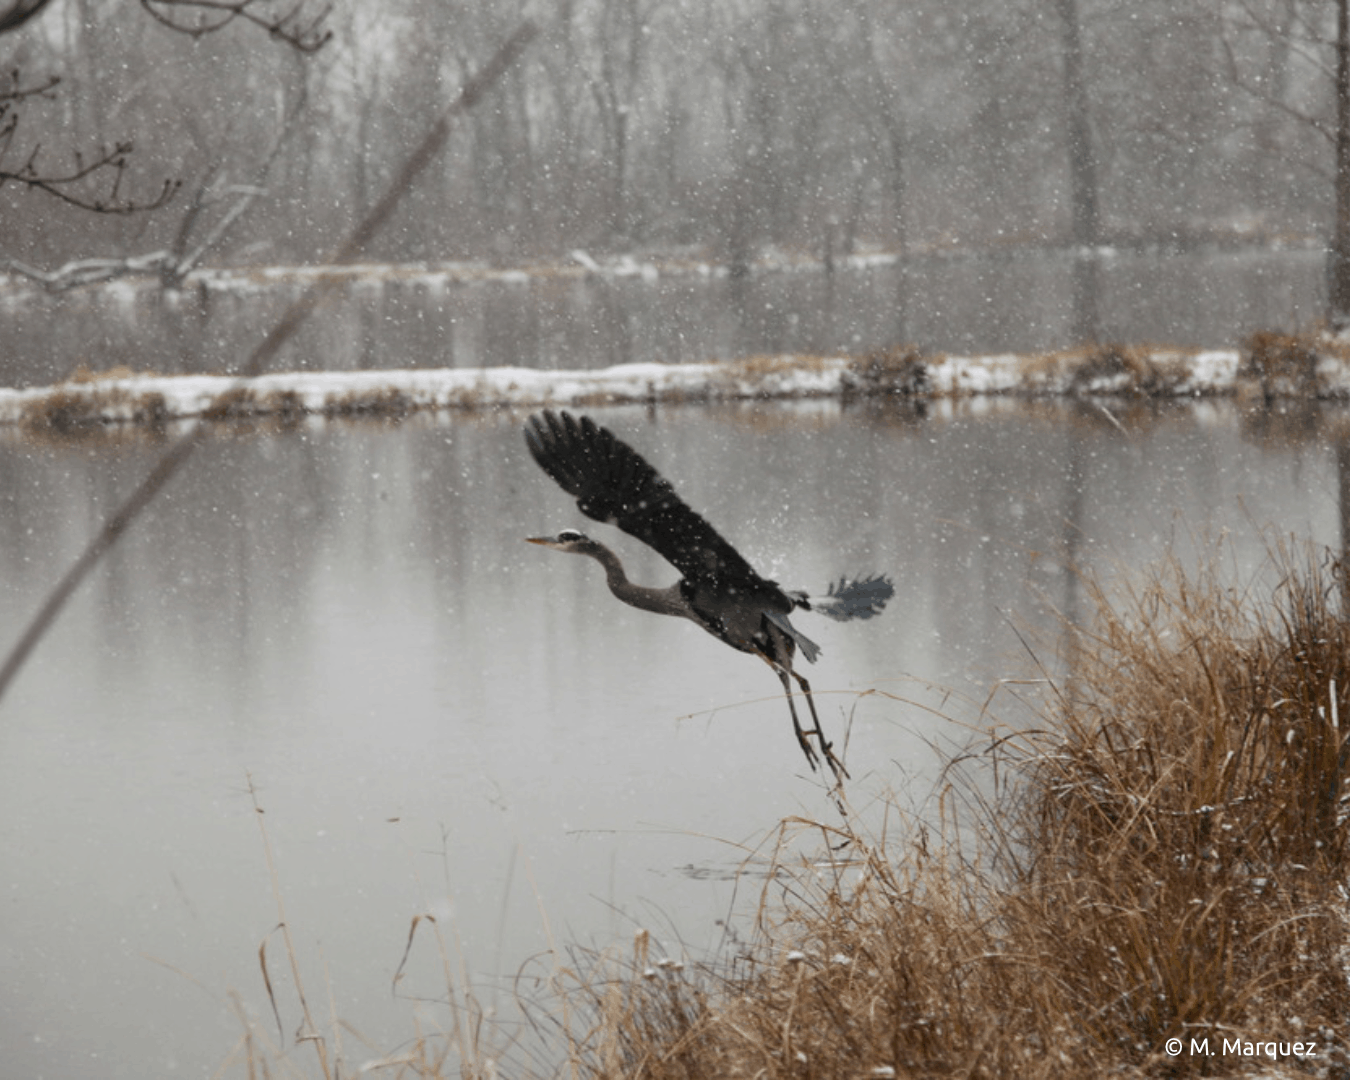 photo of a great blue heron taking off into flight as it begins to snow. There is an icy grey pond behind.